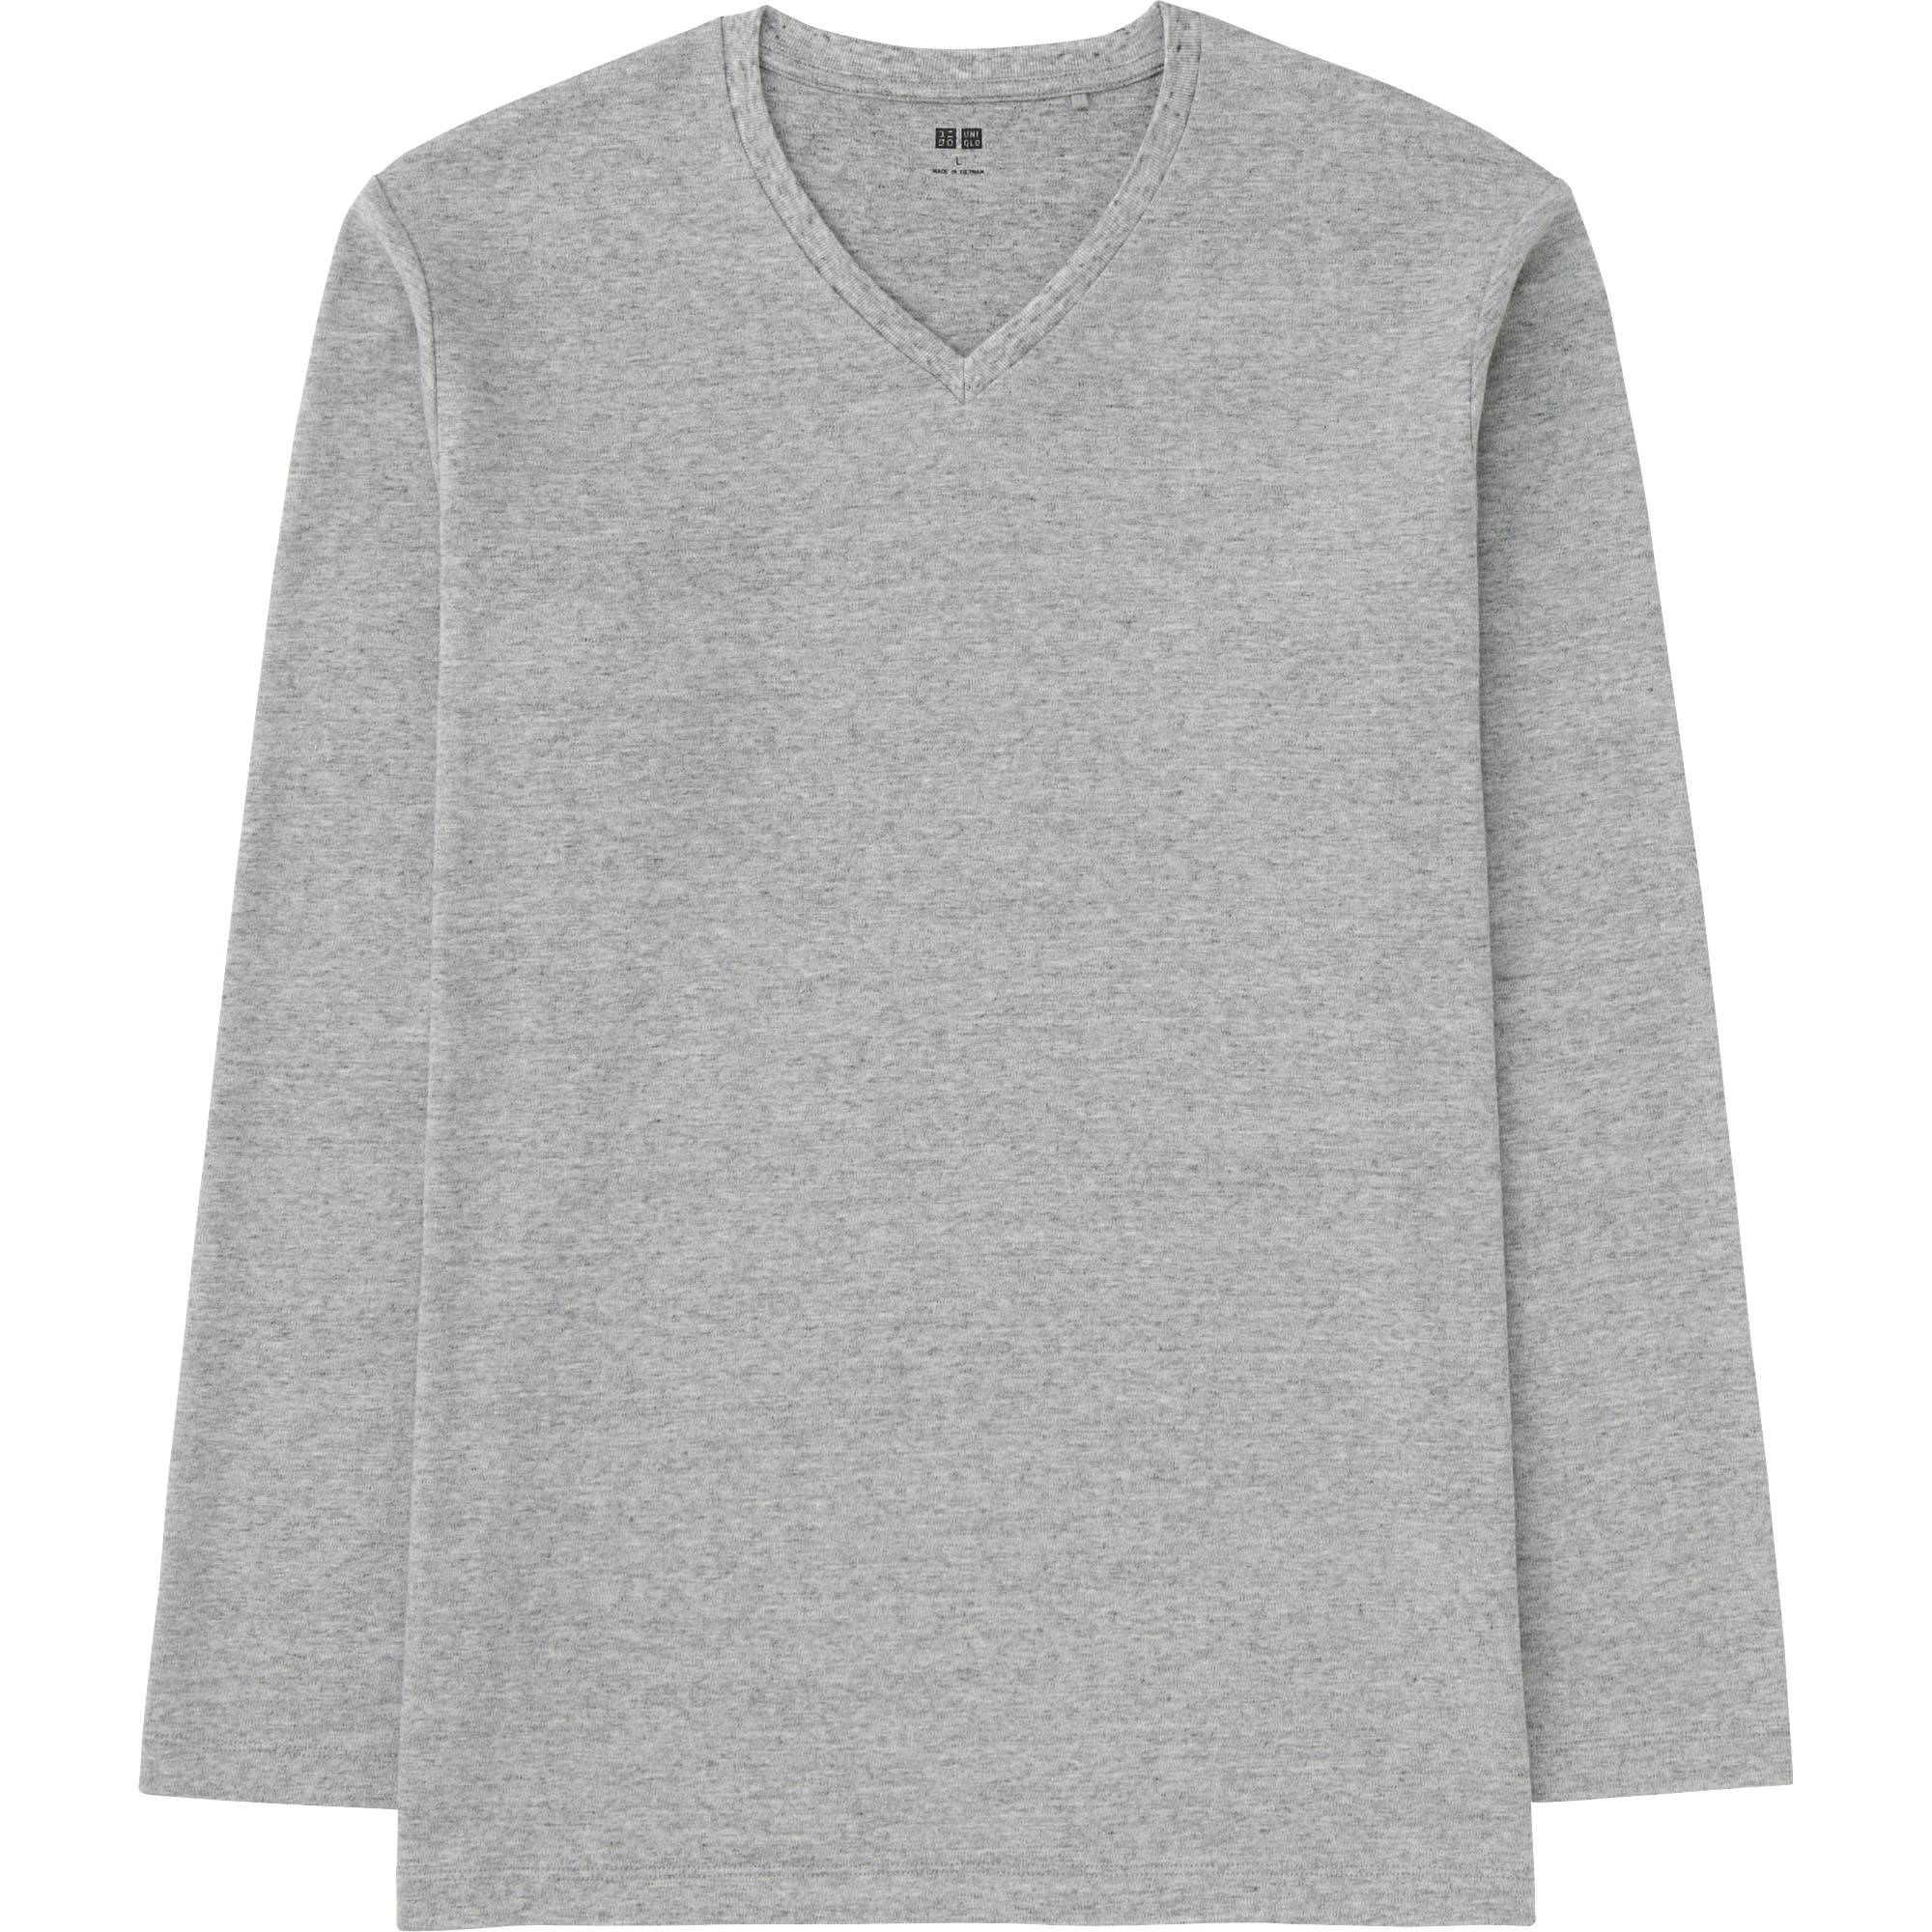 MEN SOFT TOUCH V-NECK LONG SLEEVE T-SHIRT | UNIQLO US